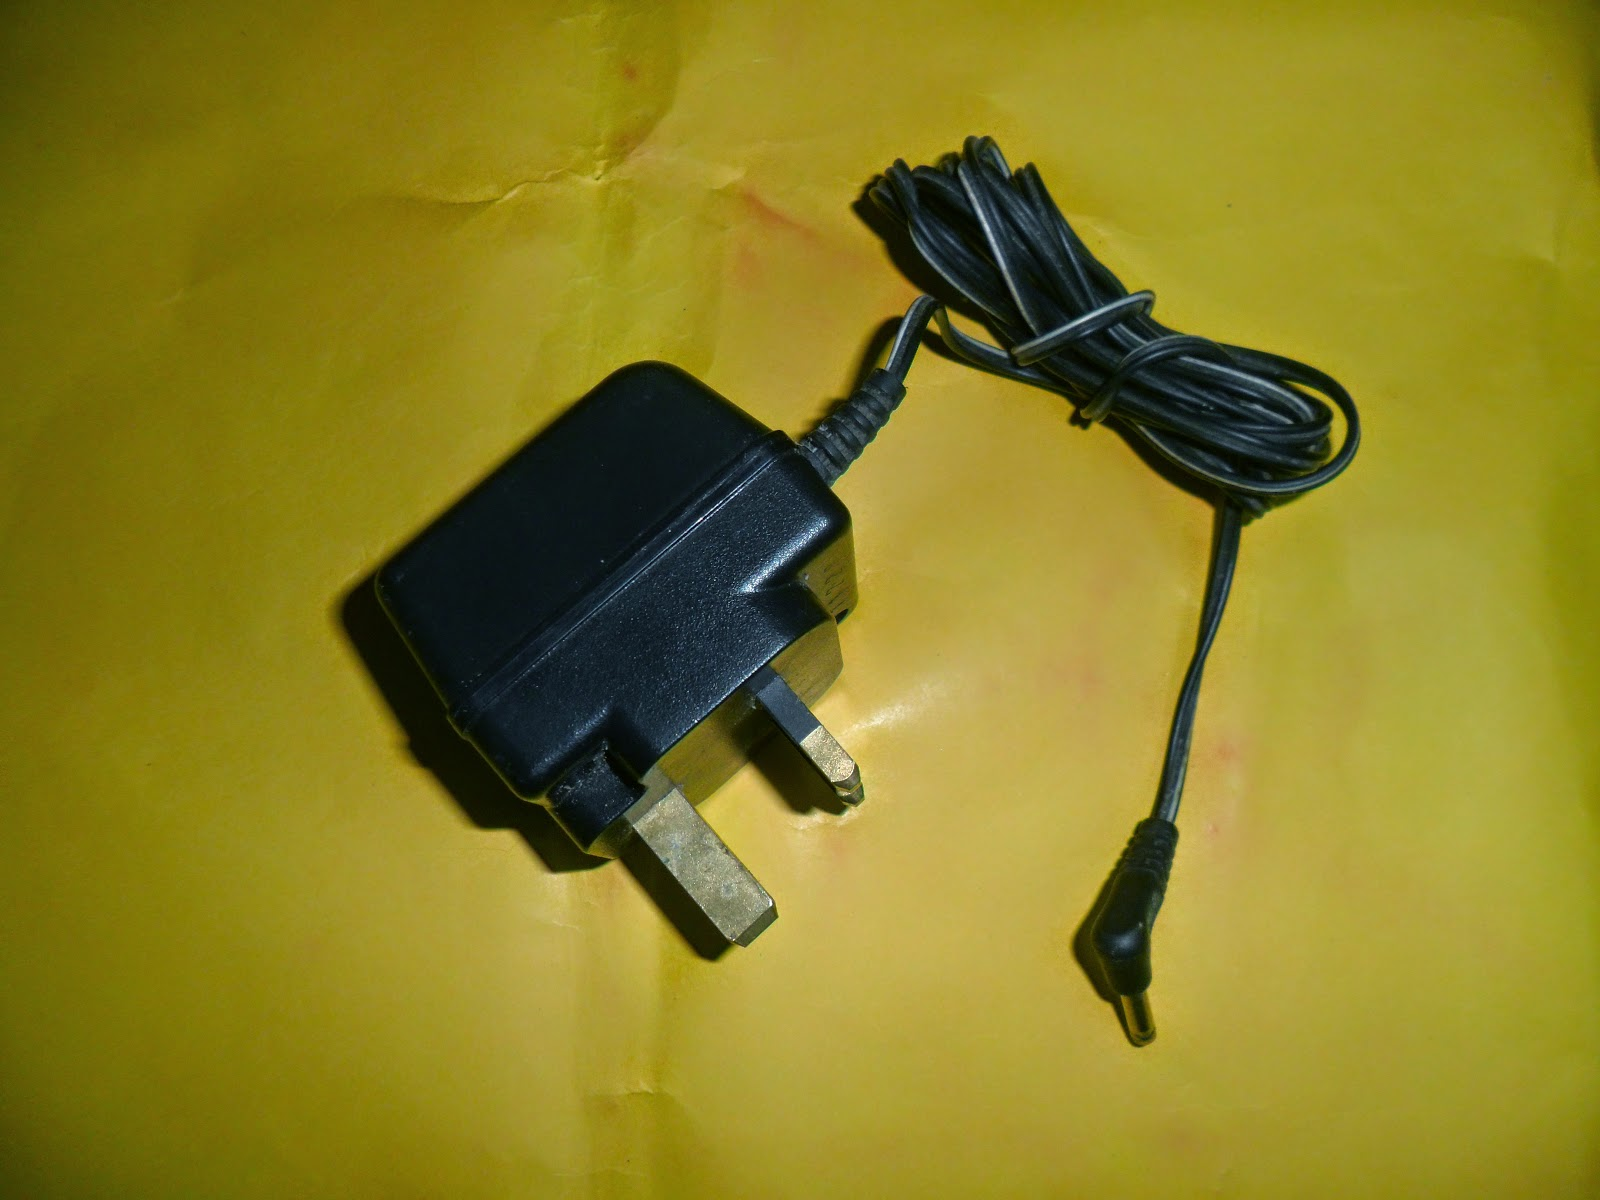 How To Make A Simple Battery Charger With Bridge Rectifier Circuit Nimh Batterycharger Powersupply Here You Can Read Or Adapter For Charging 6 Volt Rechargeable This Works And